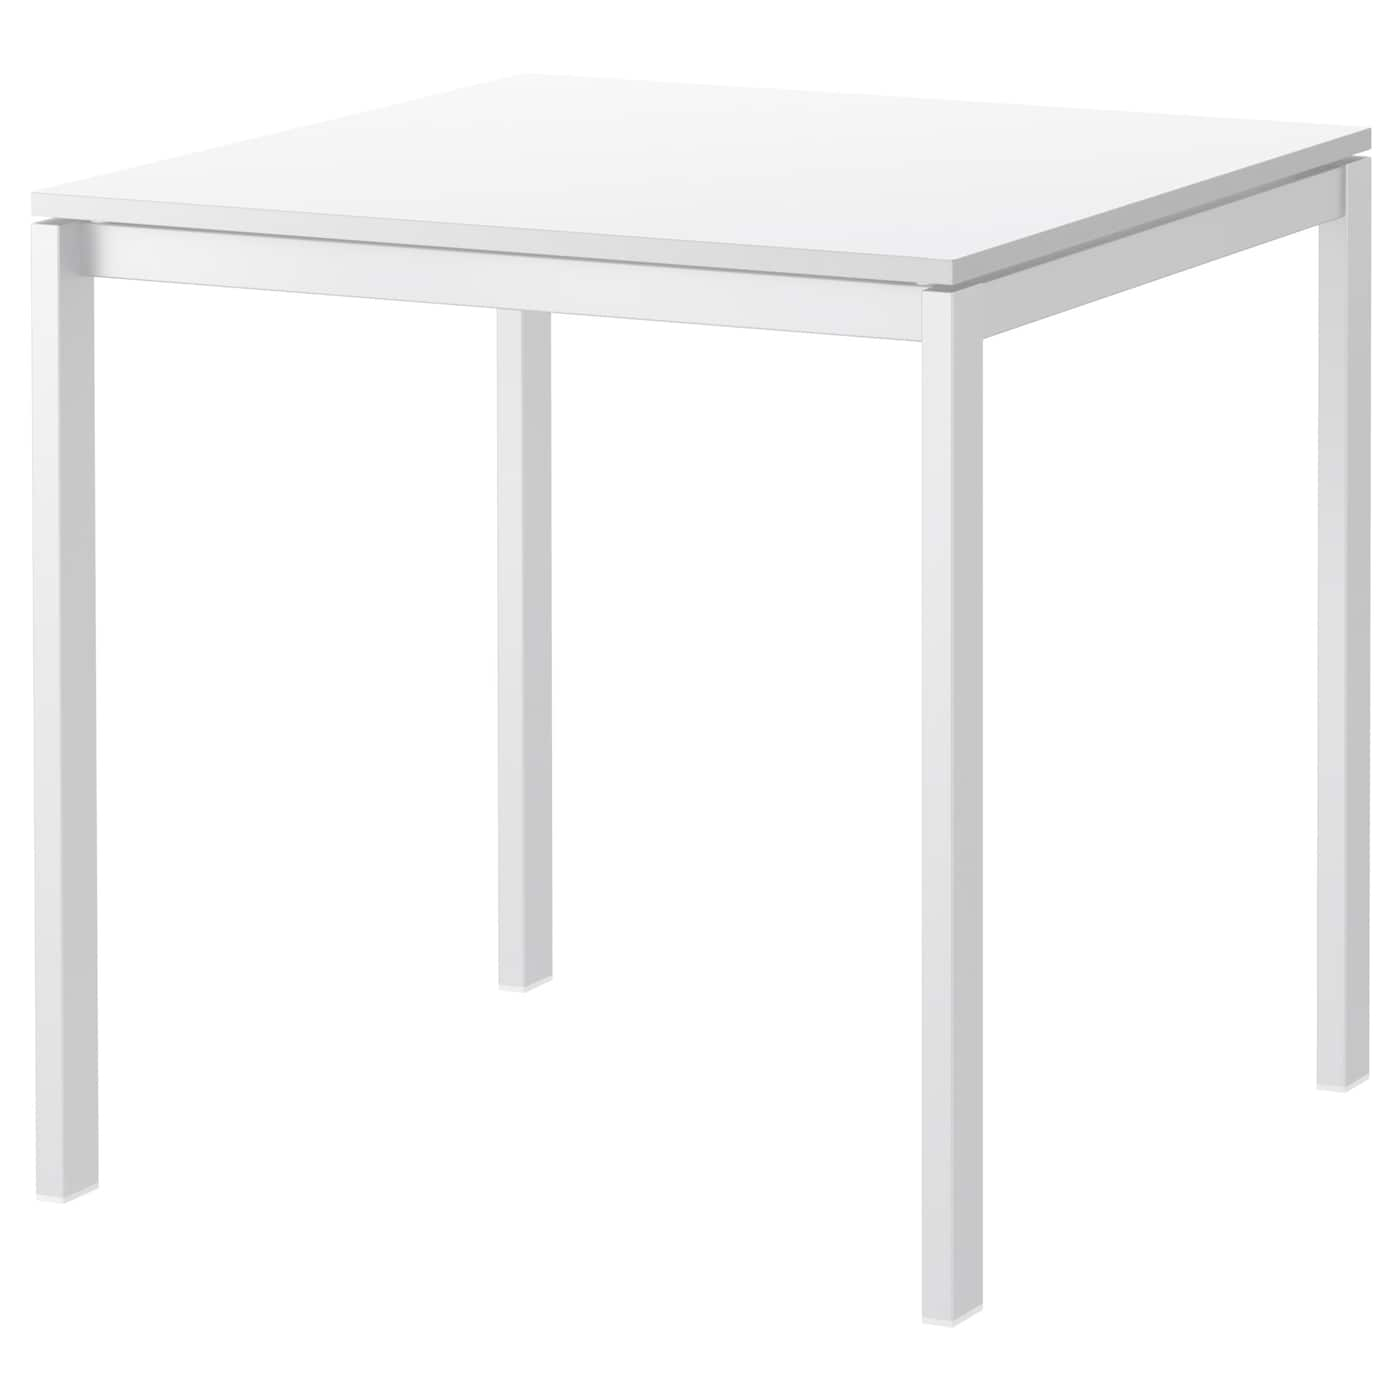 Melltorp table white 75x75 cm ikea for Table ikea blanche